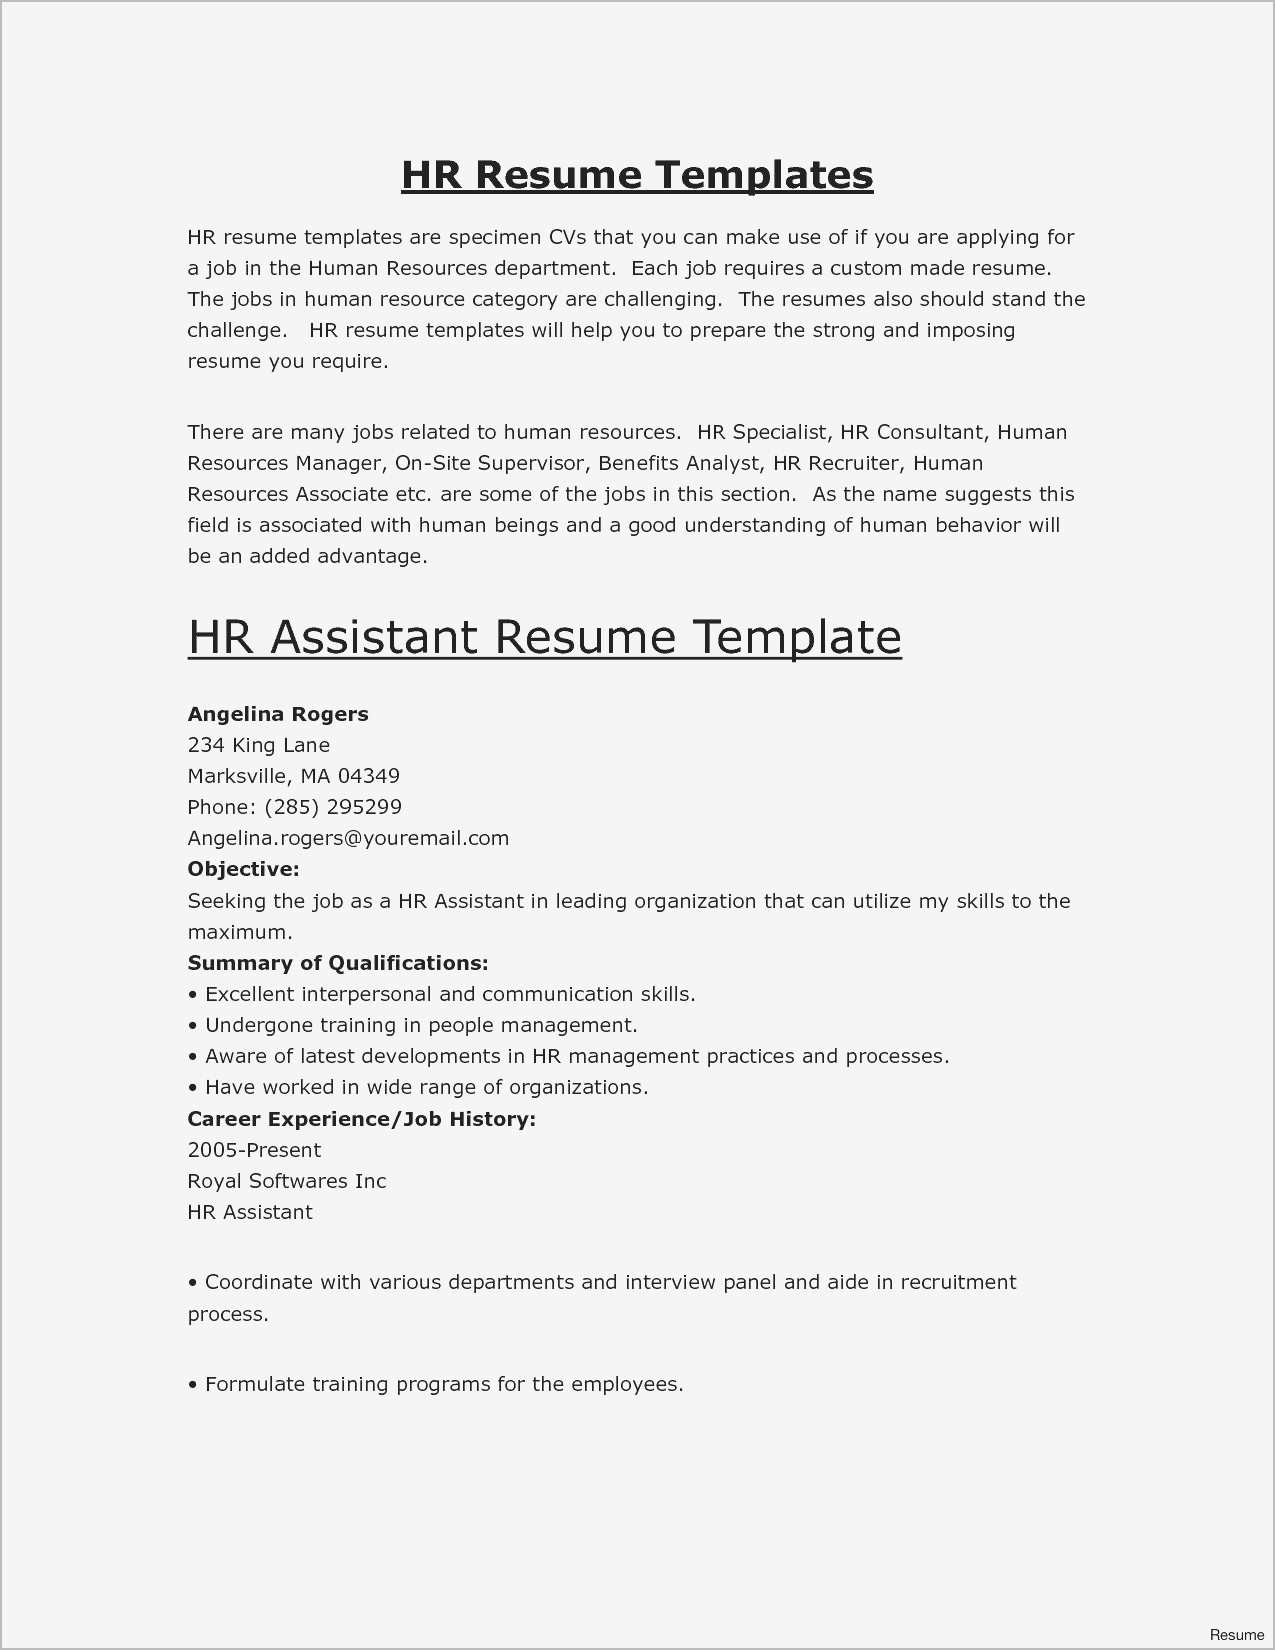 Resume Skill Words - Resume Key Words Unique Keywords for Resumes Best Resume Keywords 0d